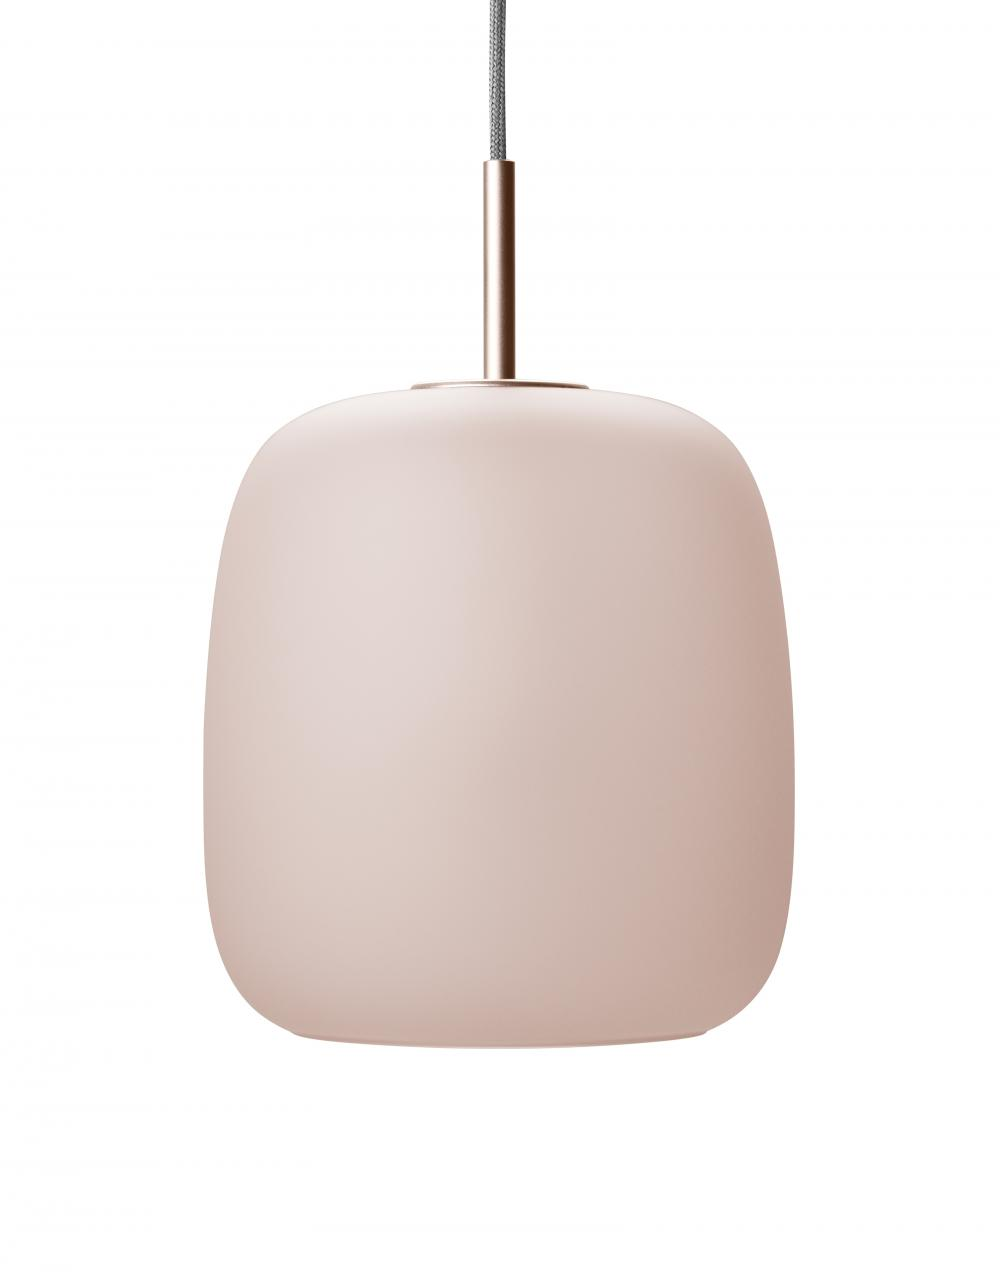 Maluma pendant light by Light Years